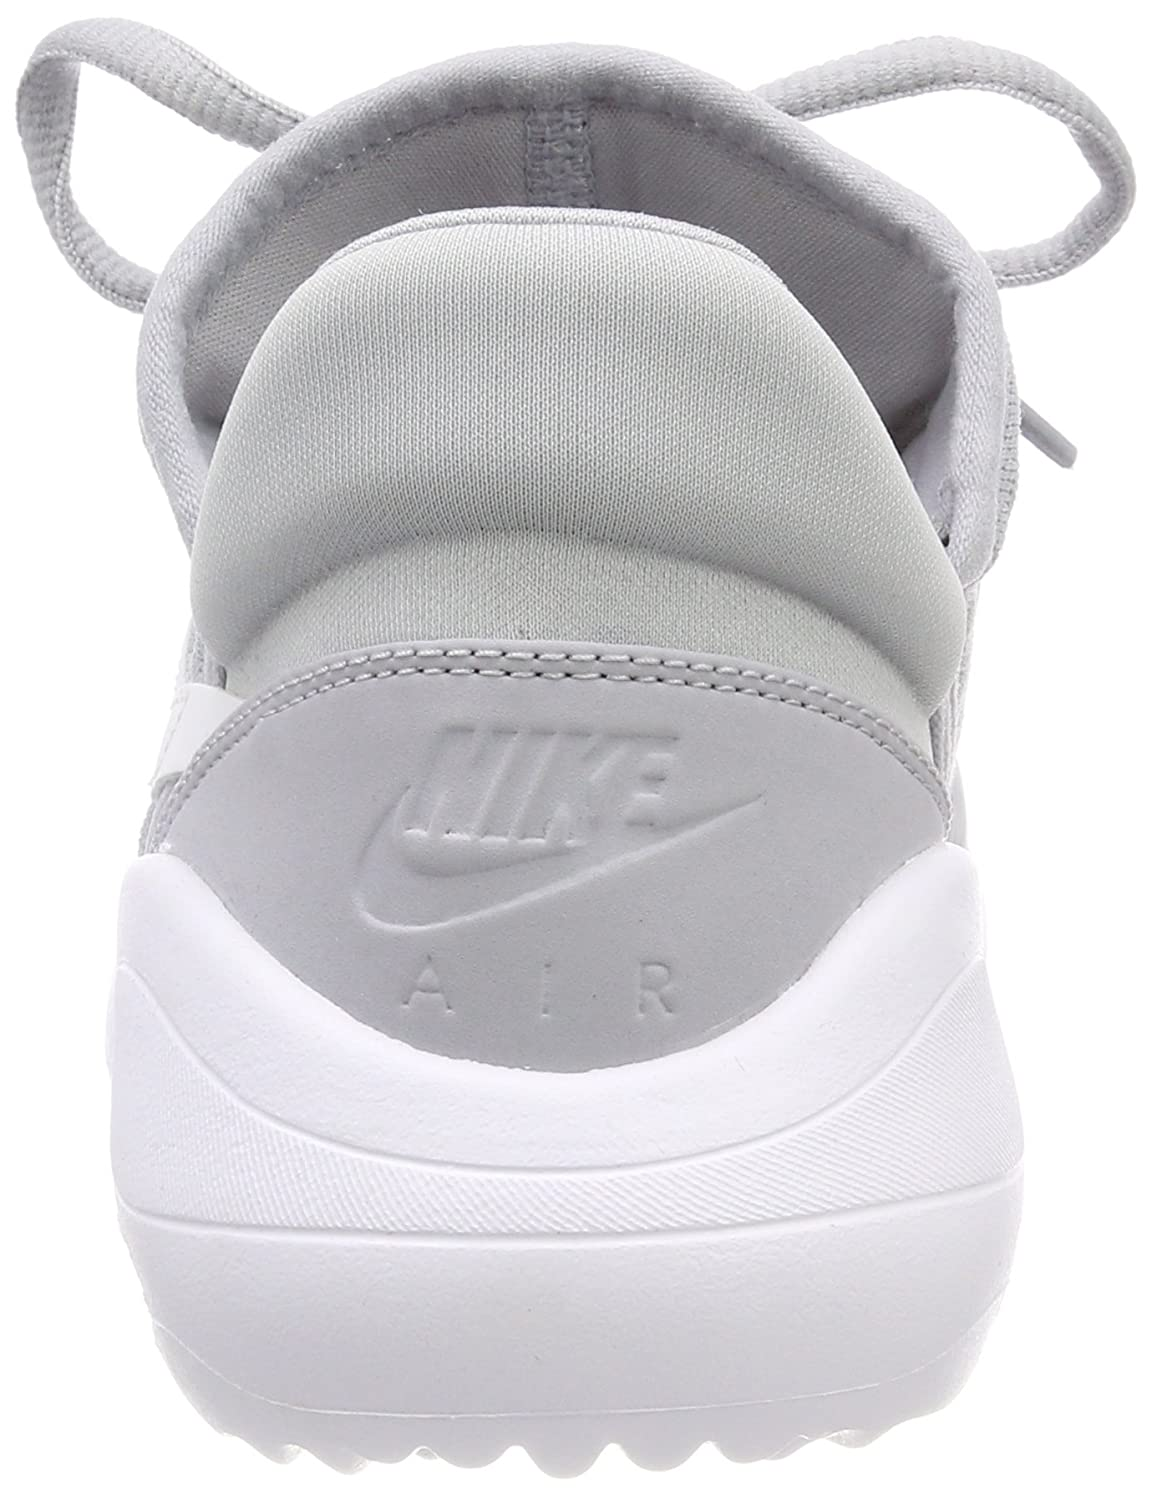 Nike Women's WMNS Air Max Sasha Low Top Sneakers (Wolf GreyWhite 001), 8.5 UK